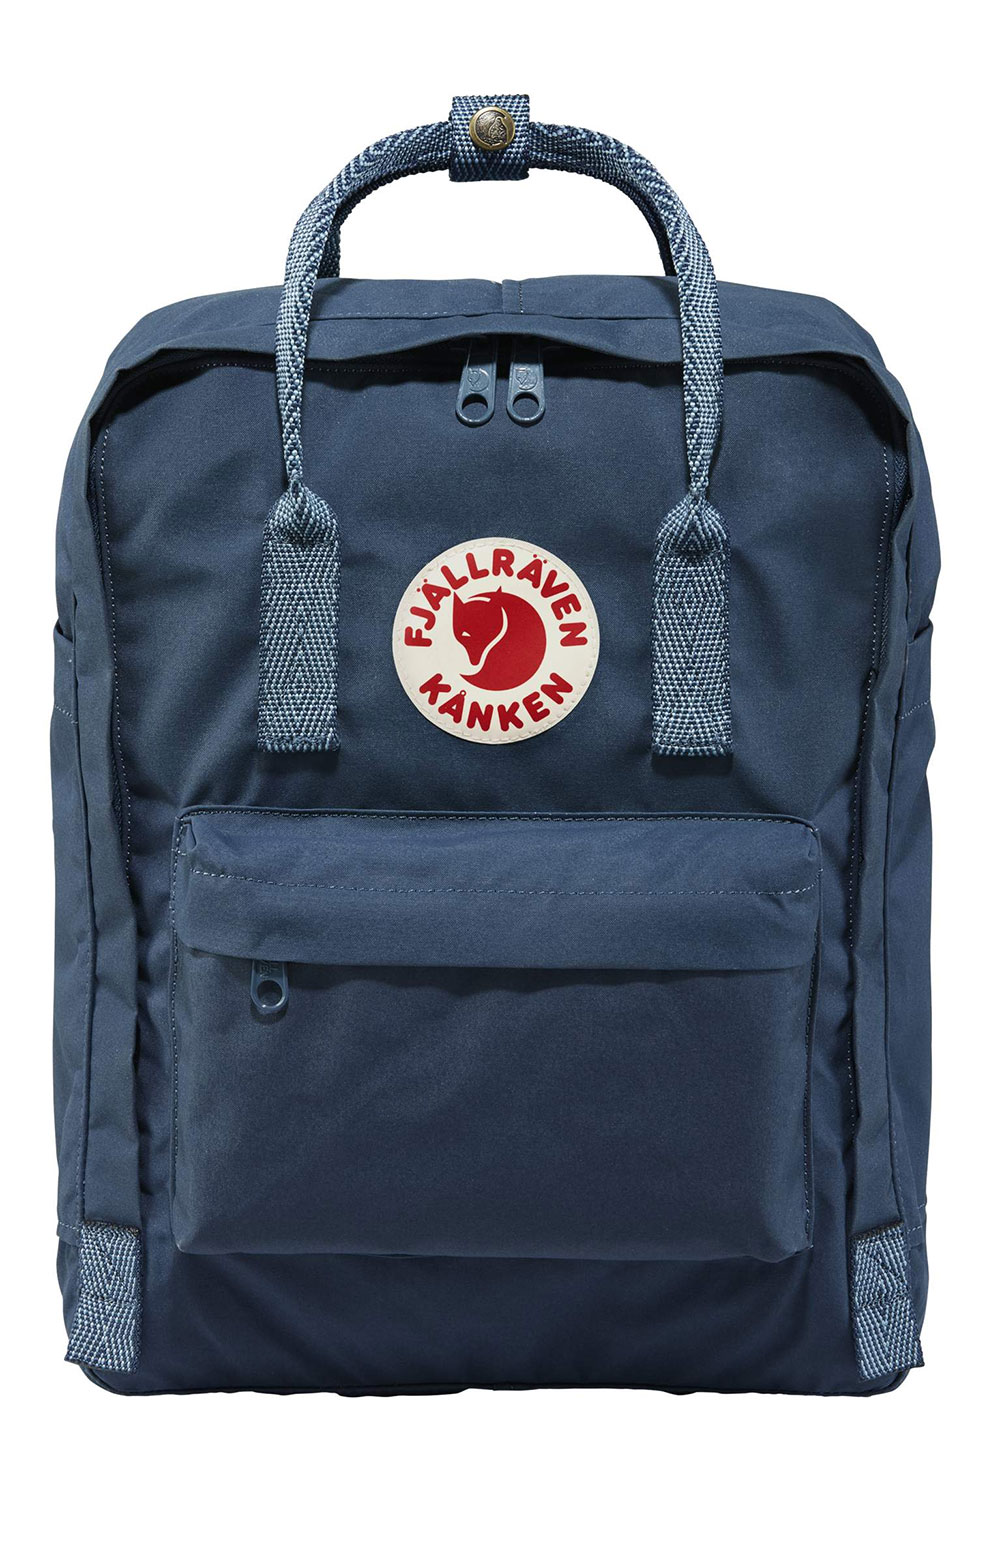 Kanken Backpack - Royal Blue/Goose Eye